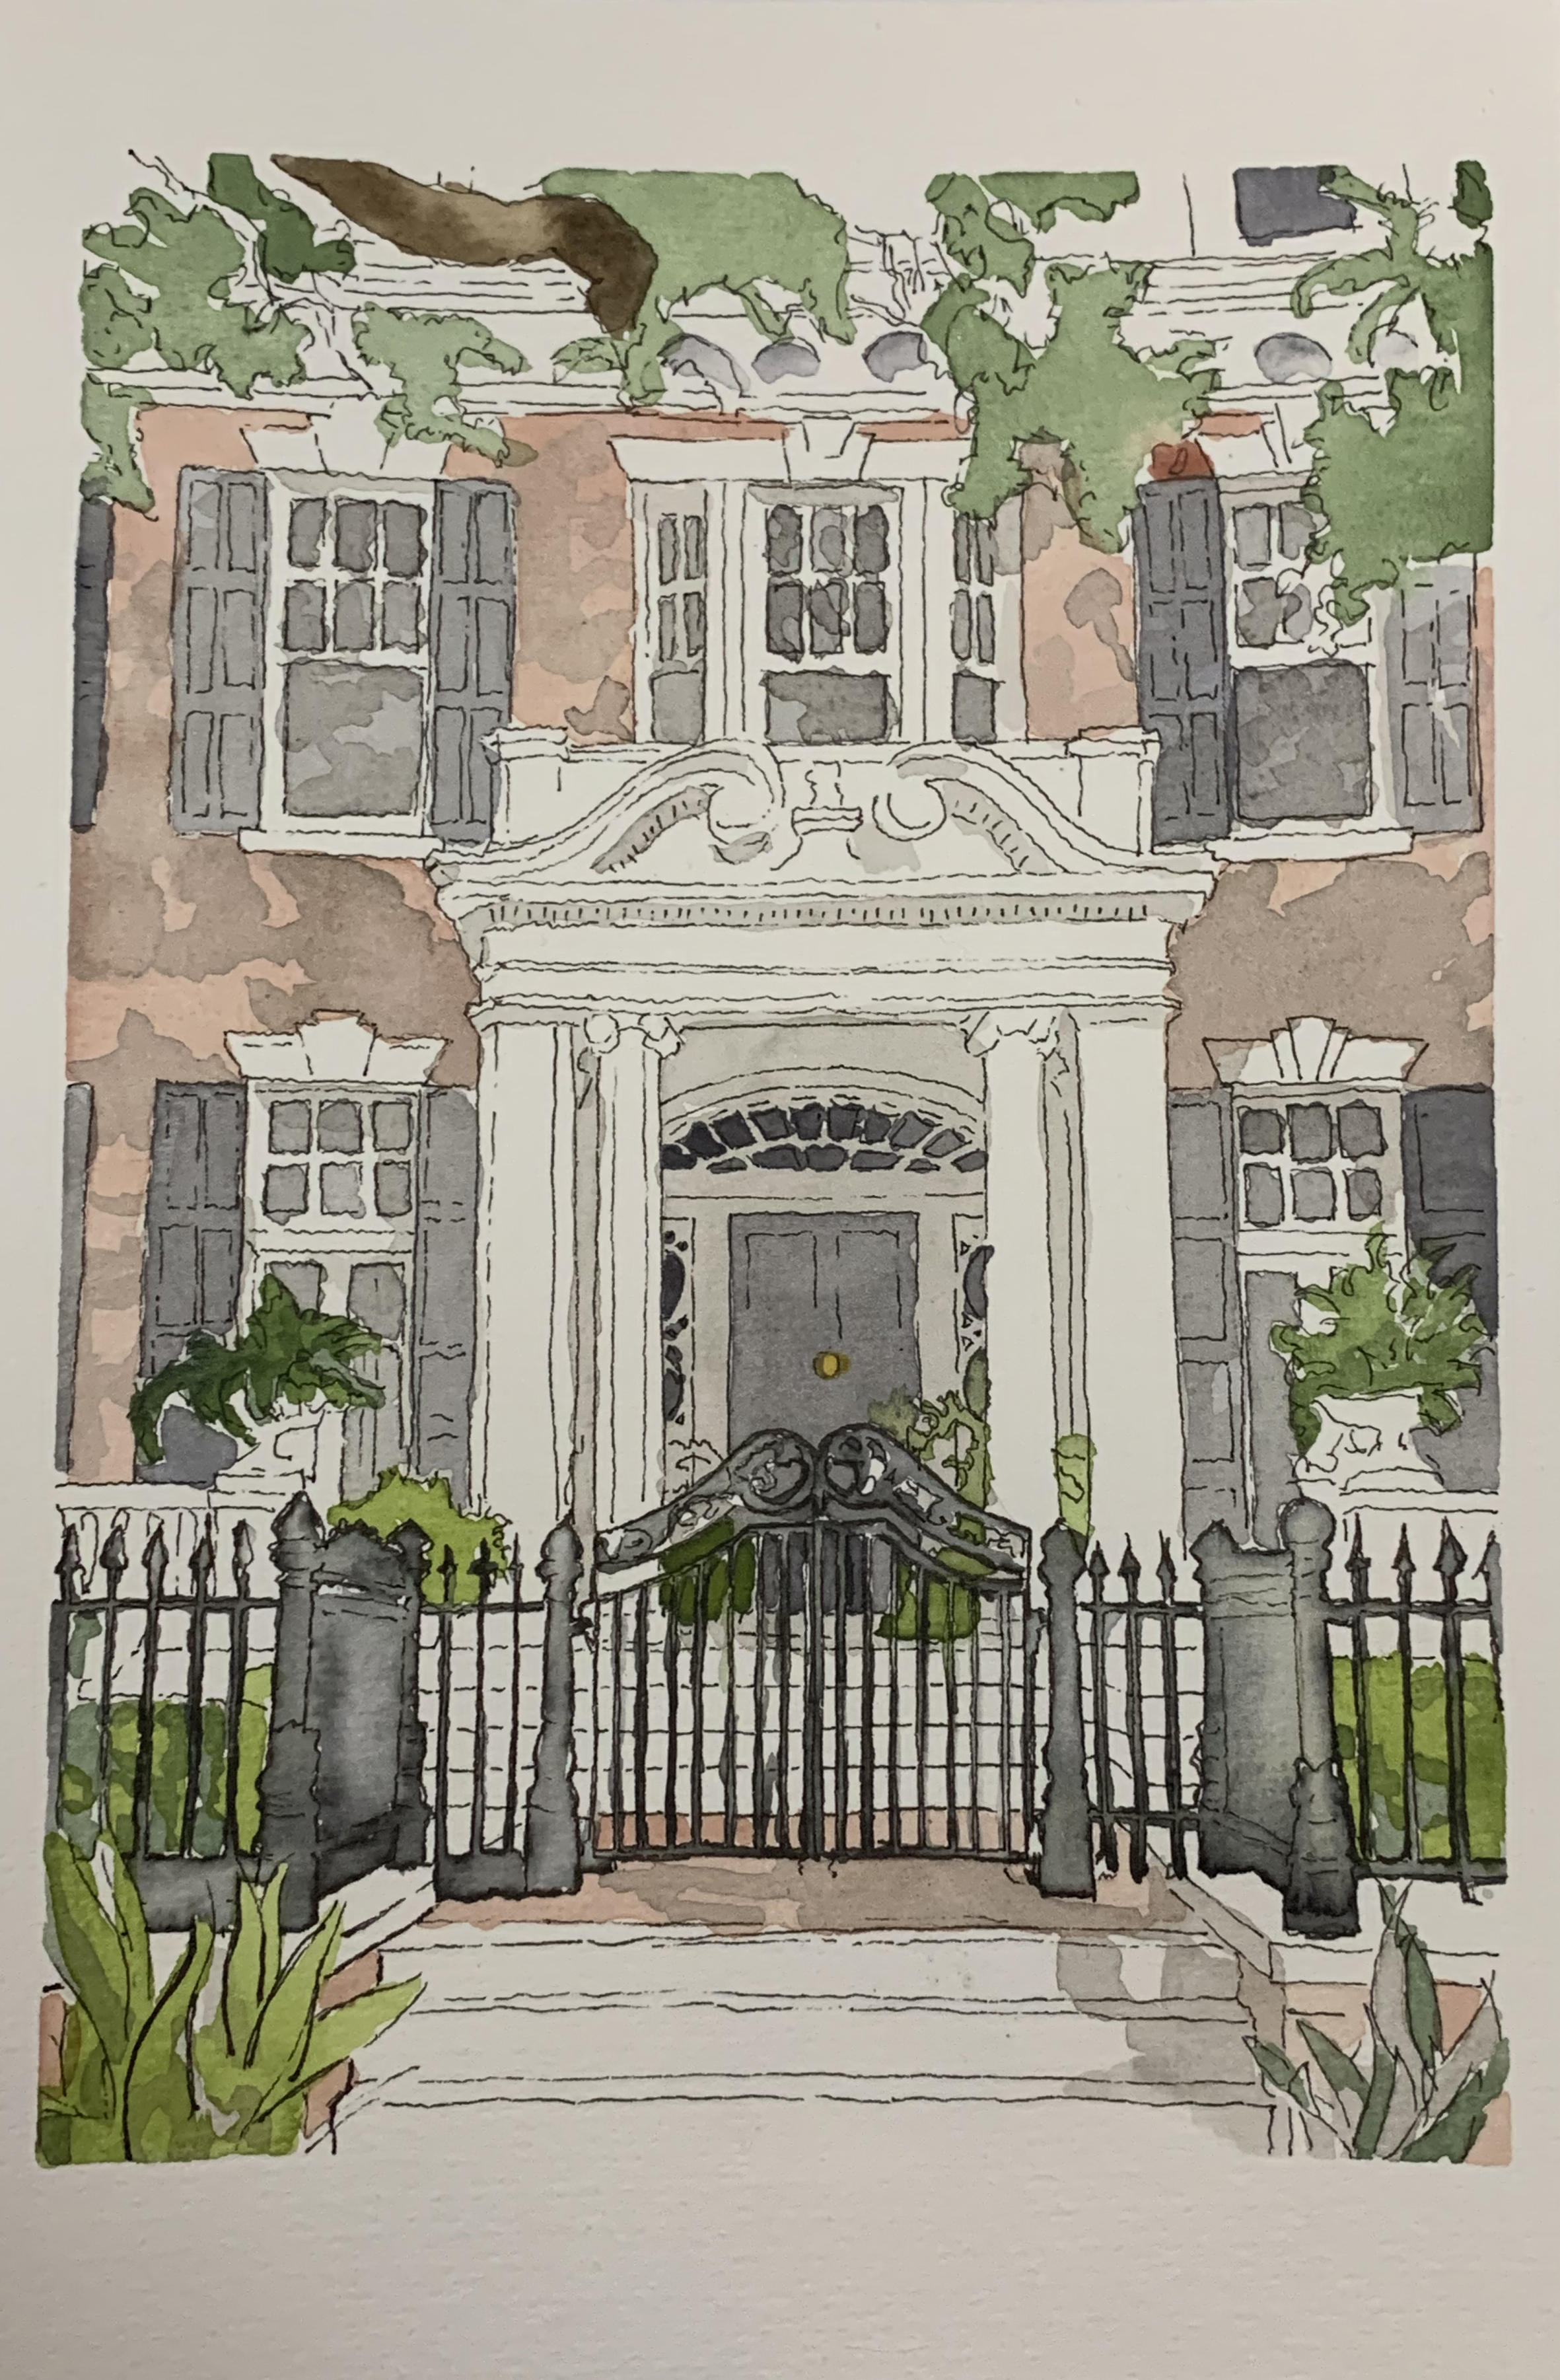 Rittenhouse, 6x9 inches, watercolor, ink wash and pen on 140lb, Feb 2019